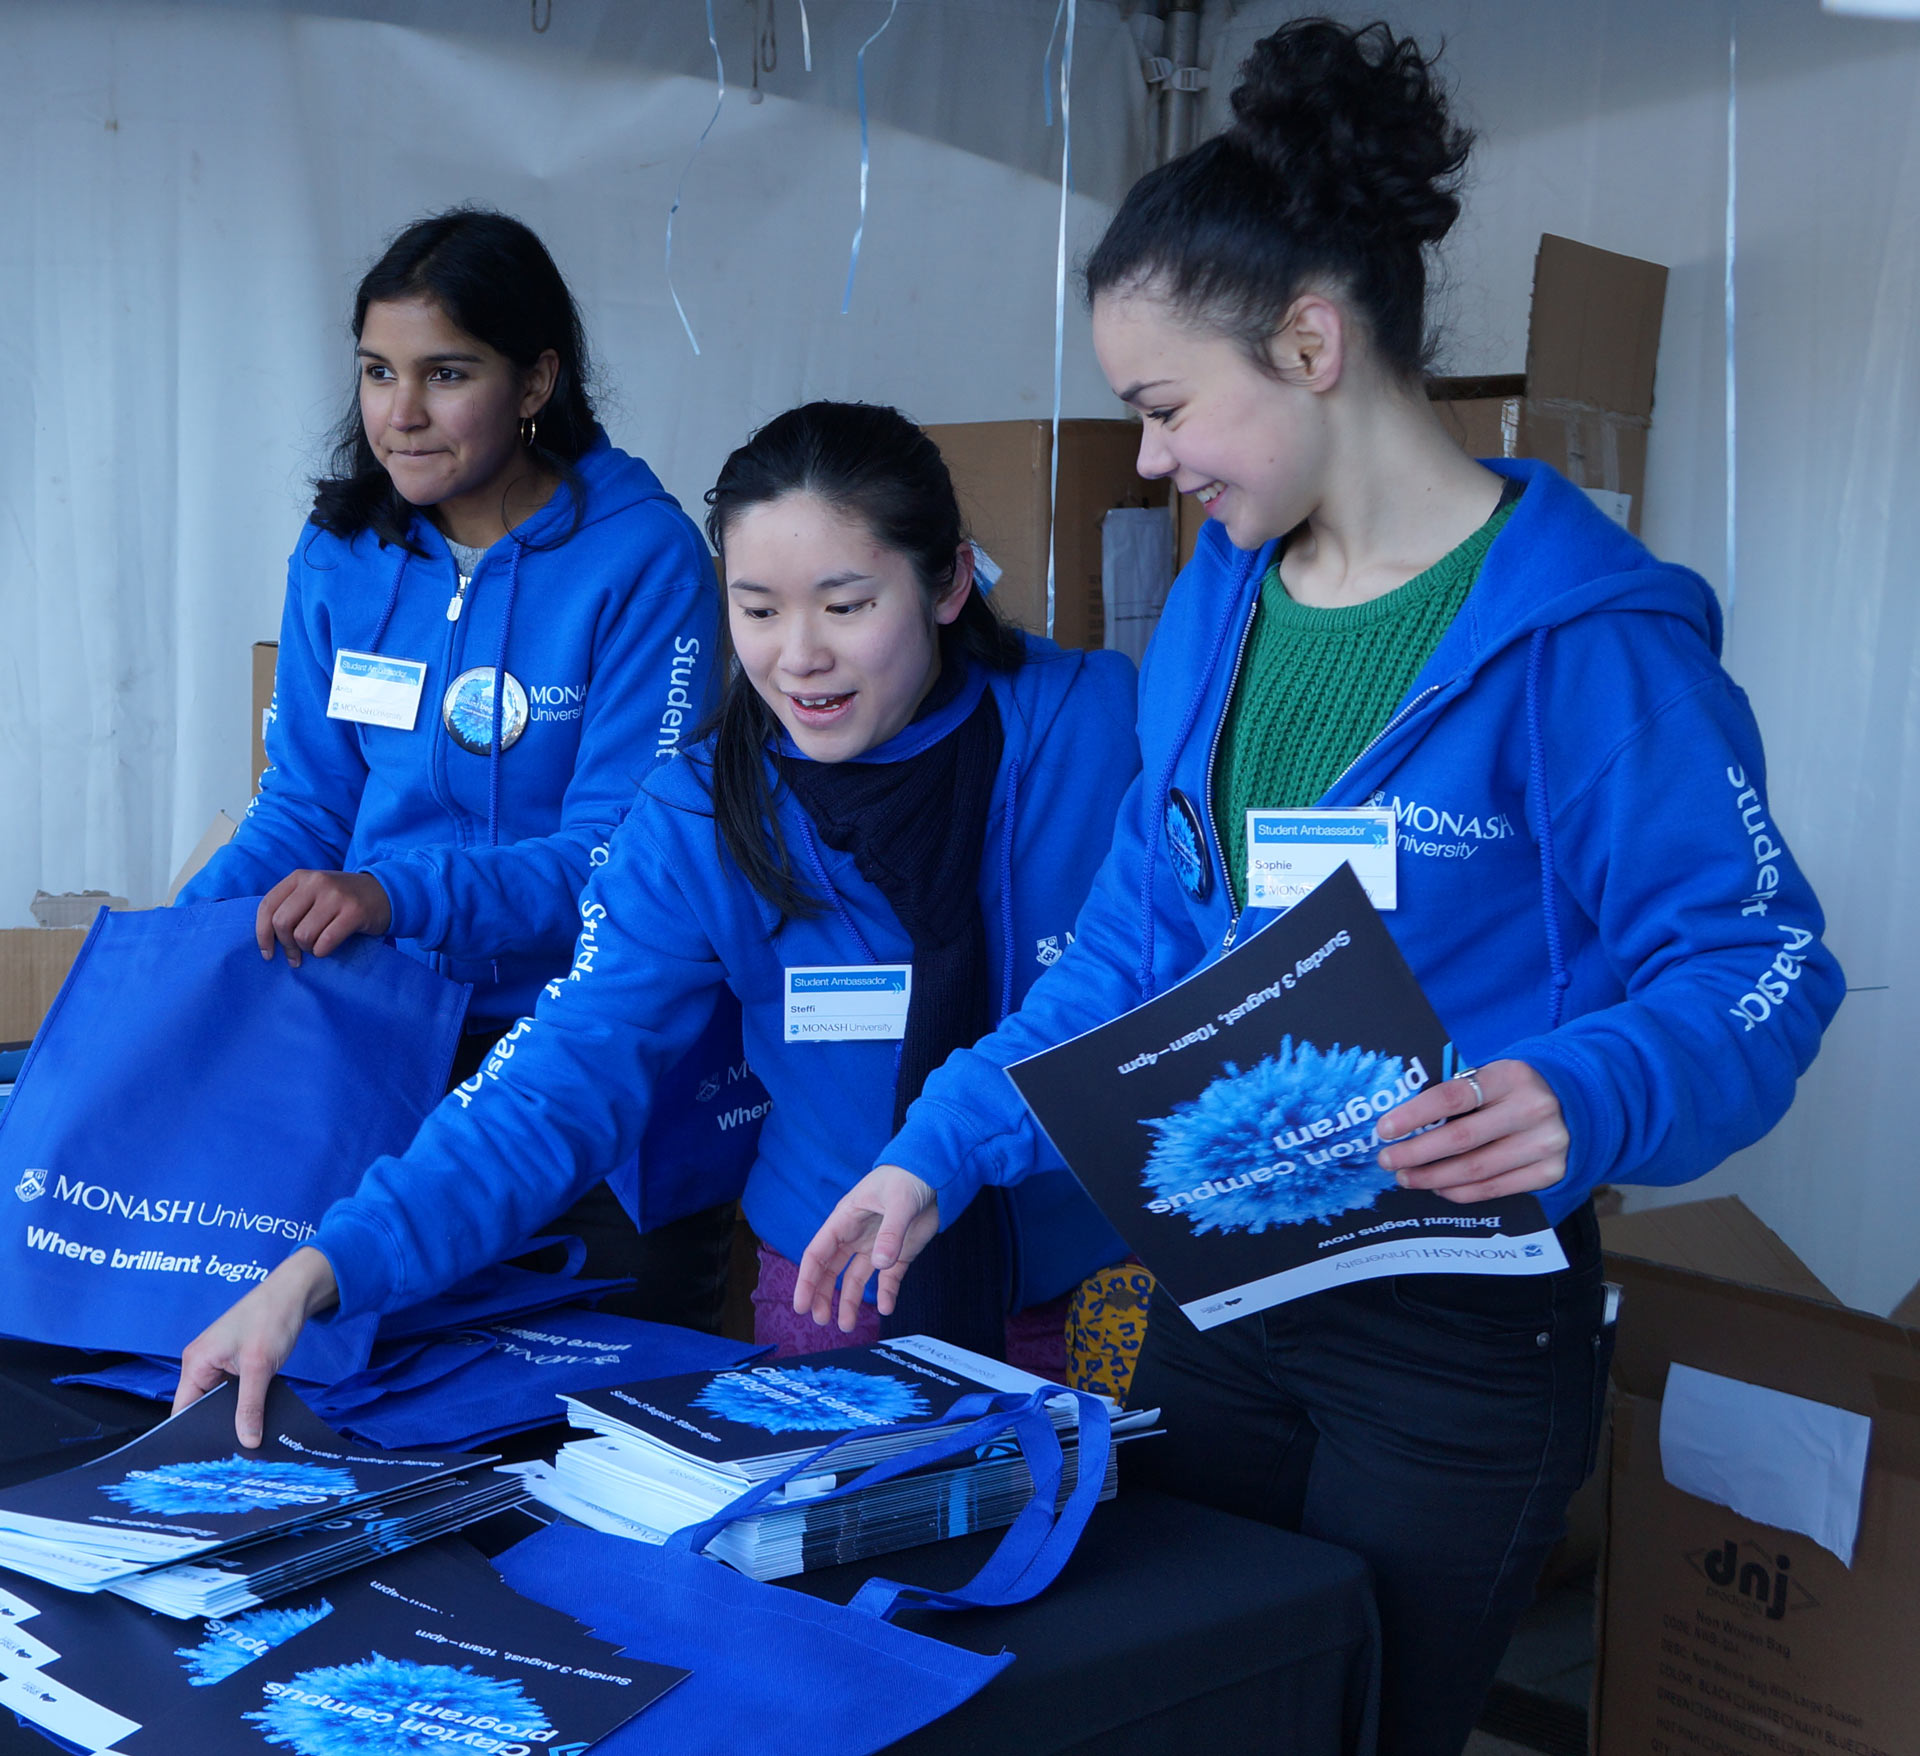 Monash students helping out